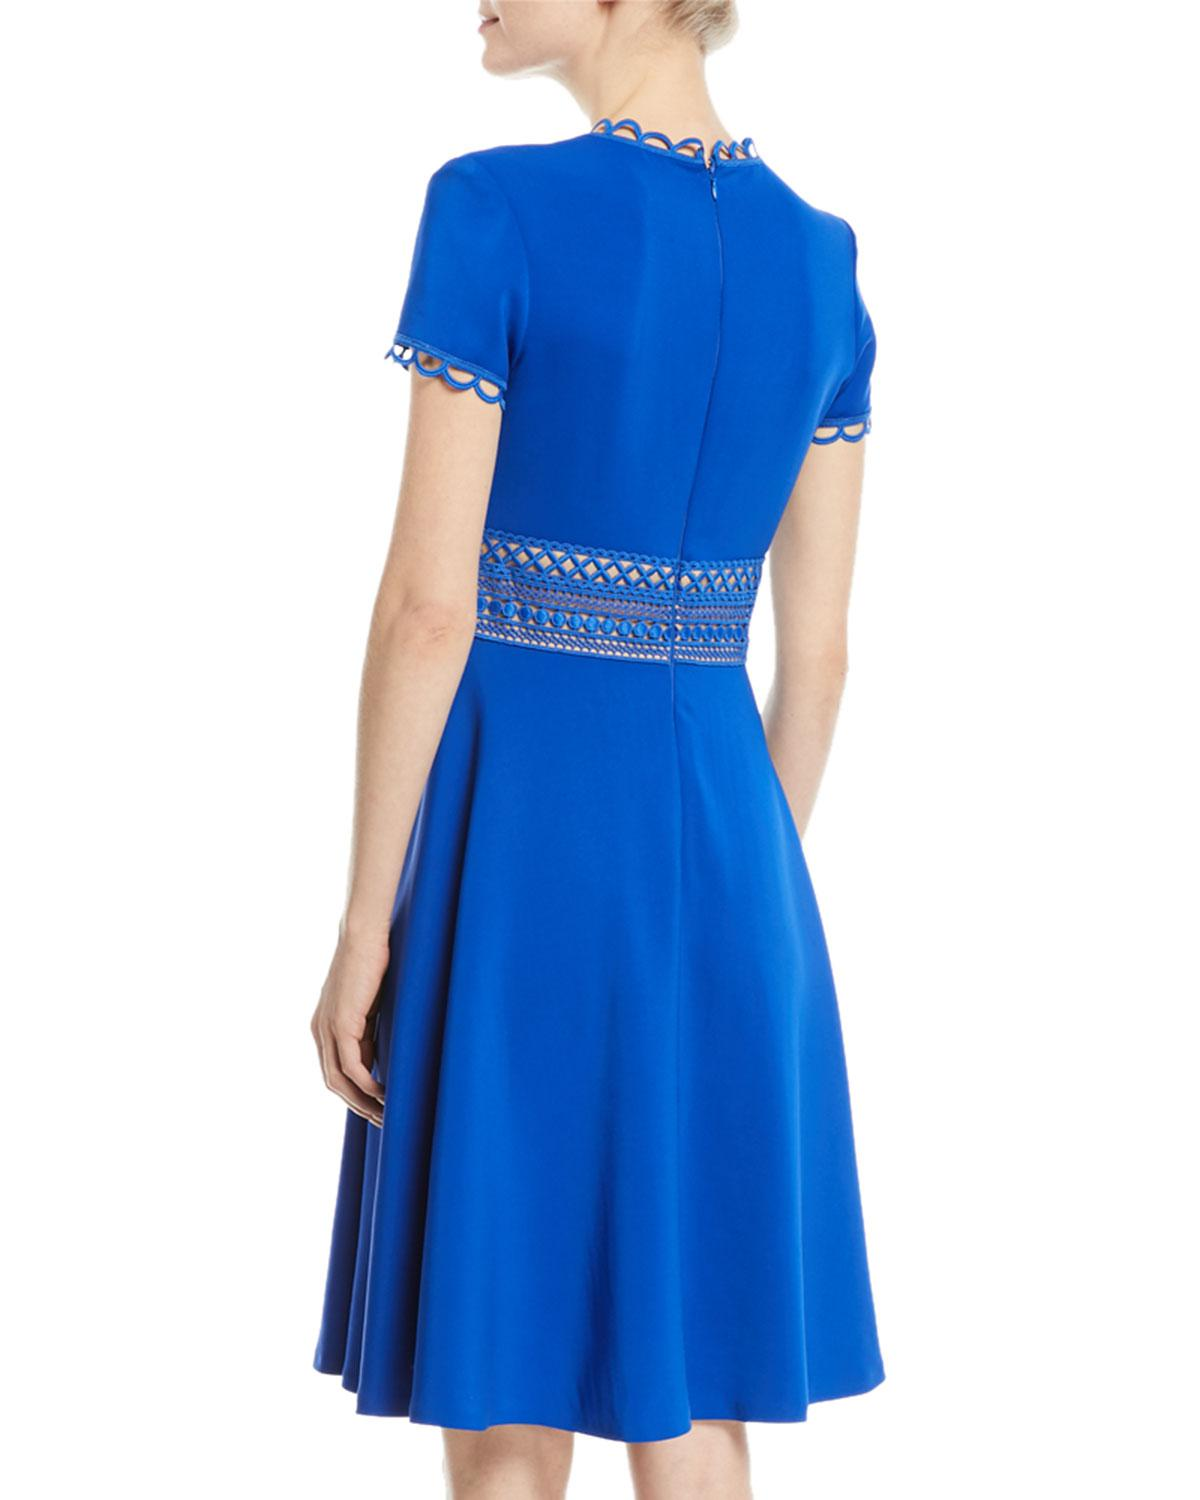 871f2ef1ba0 Lyst - NK32 Naeem Khan Crepe Short-sleeve Cocktail Dress W  Lace Band in  Blue - Save 40%